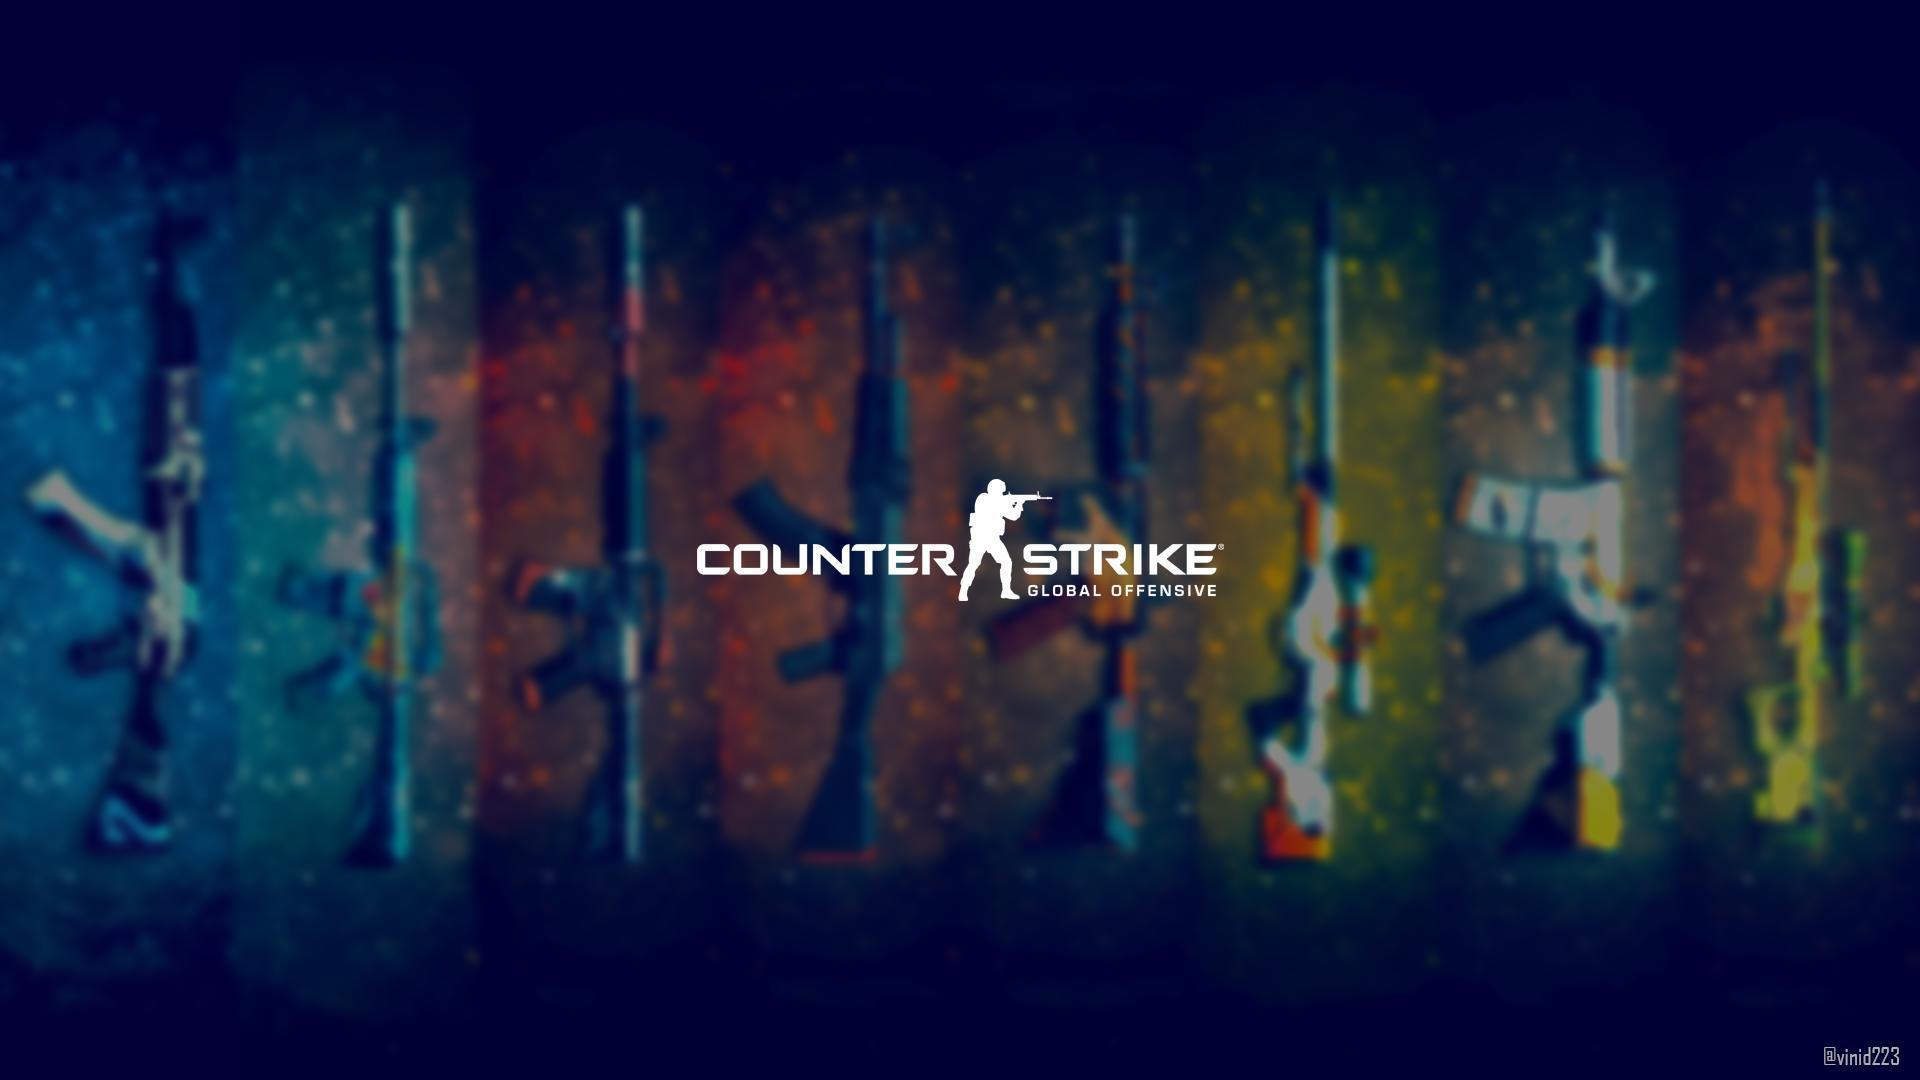 Counter Strike Source Ipad: Counter-Strike: Global Offensive Wallpapers